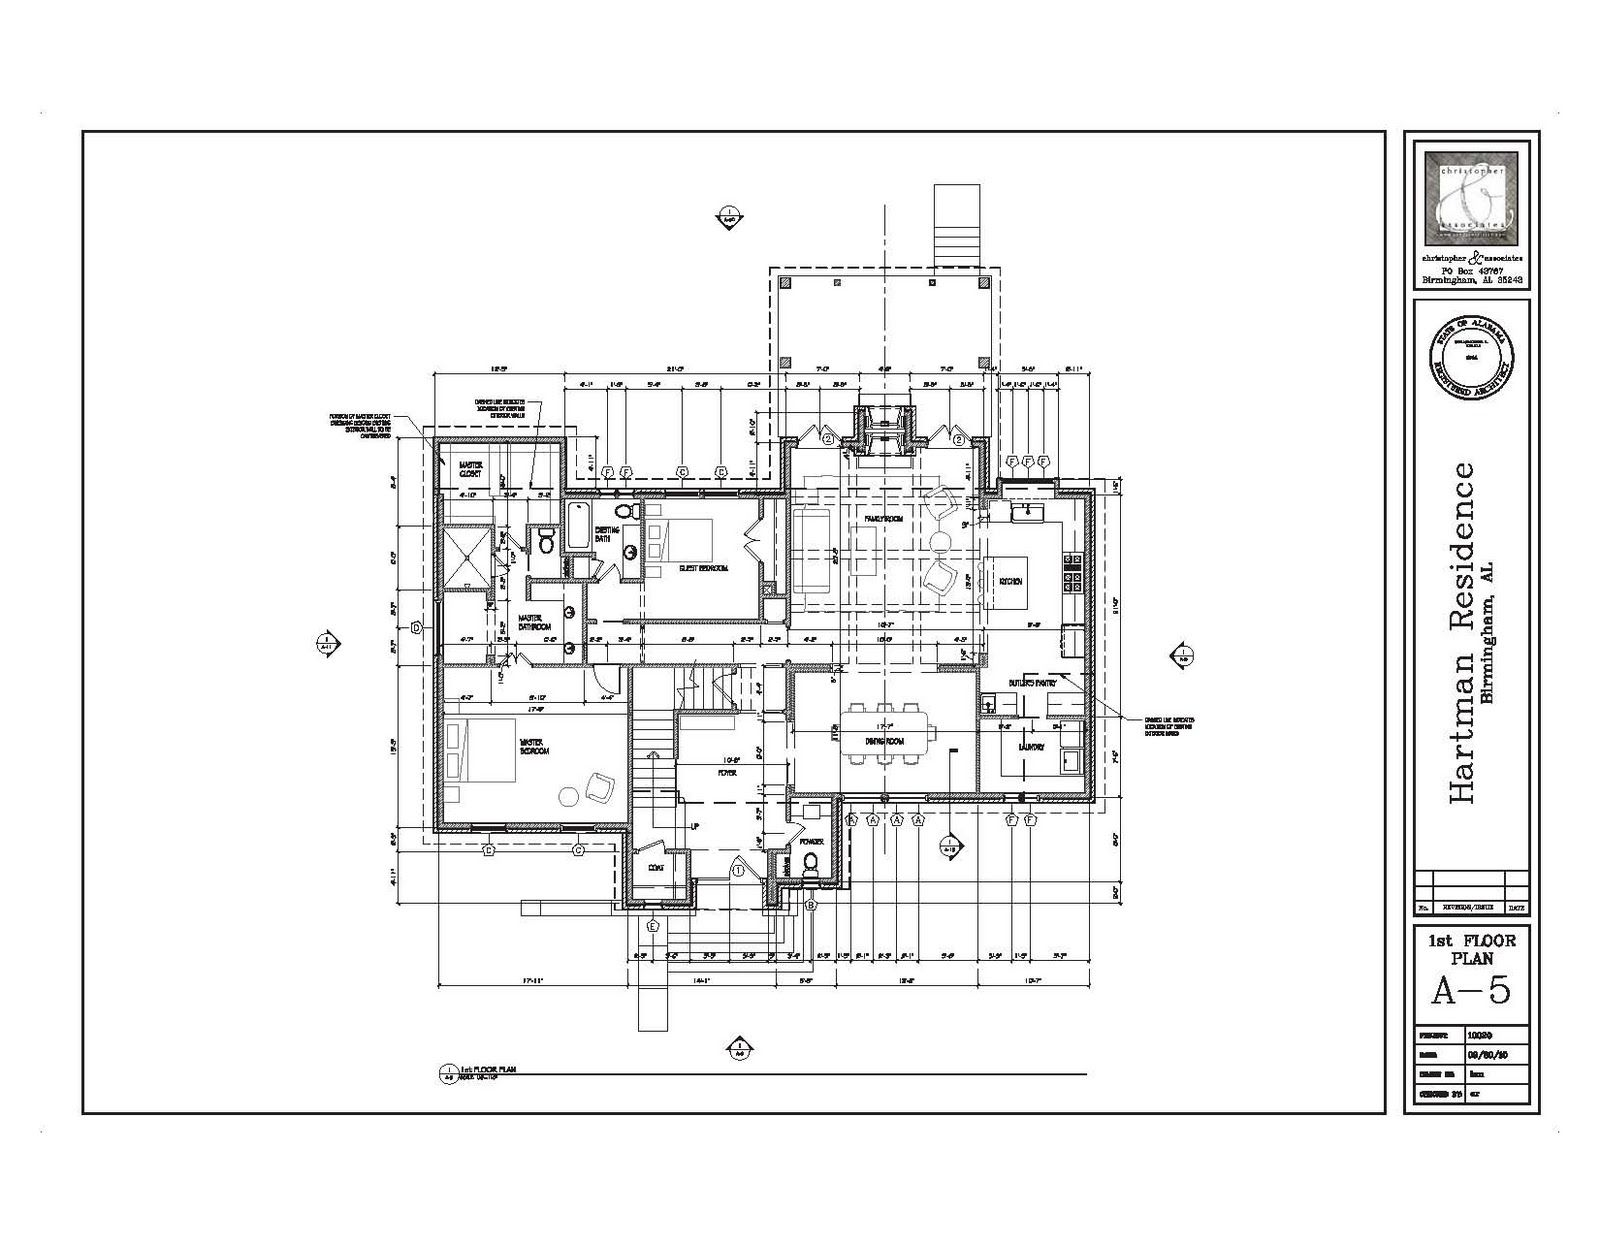 Floor plan title block construction drawing projects - Free home design drawing software ...